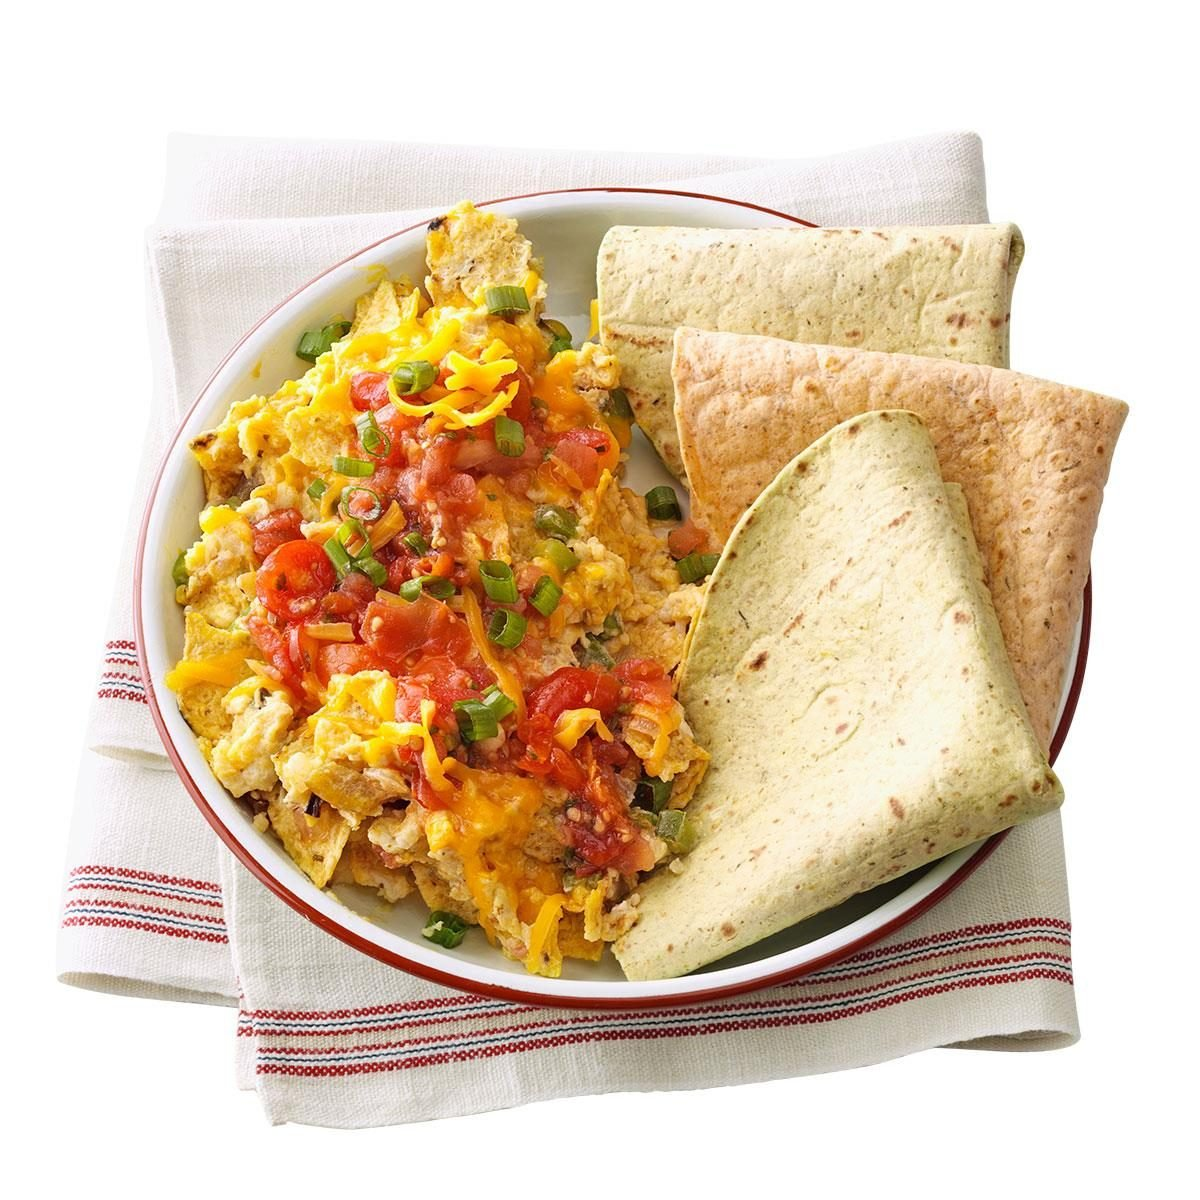 Day 7 Breakfast: Migas, My Way